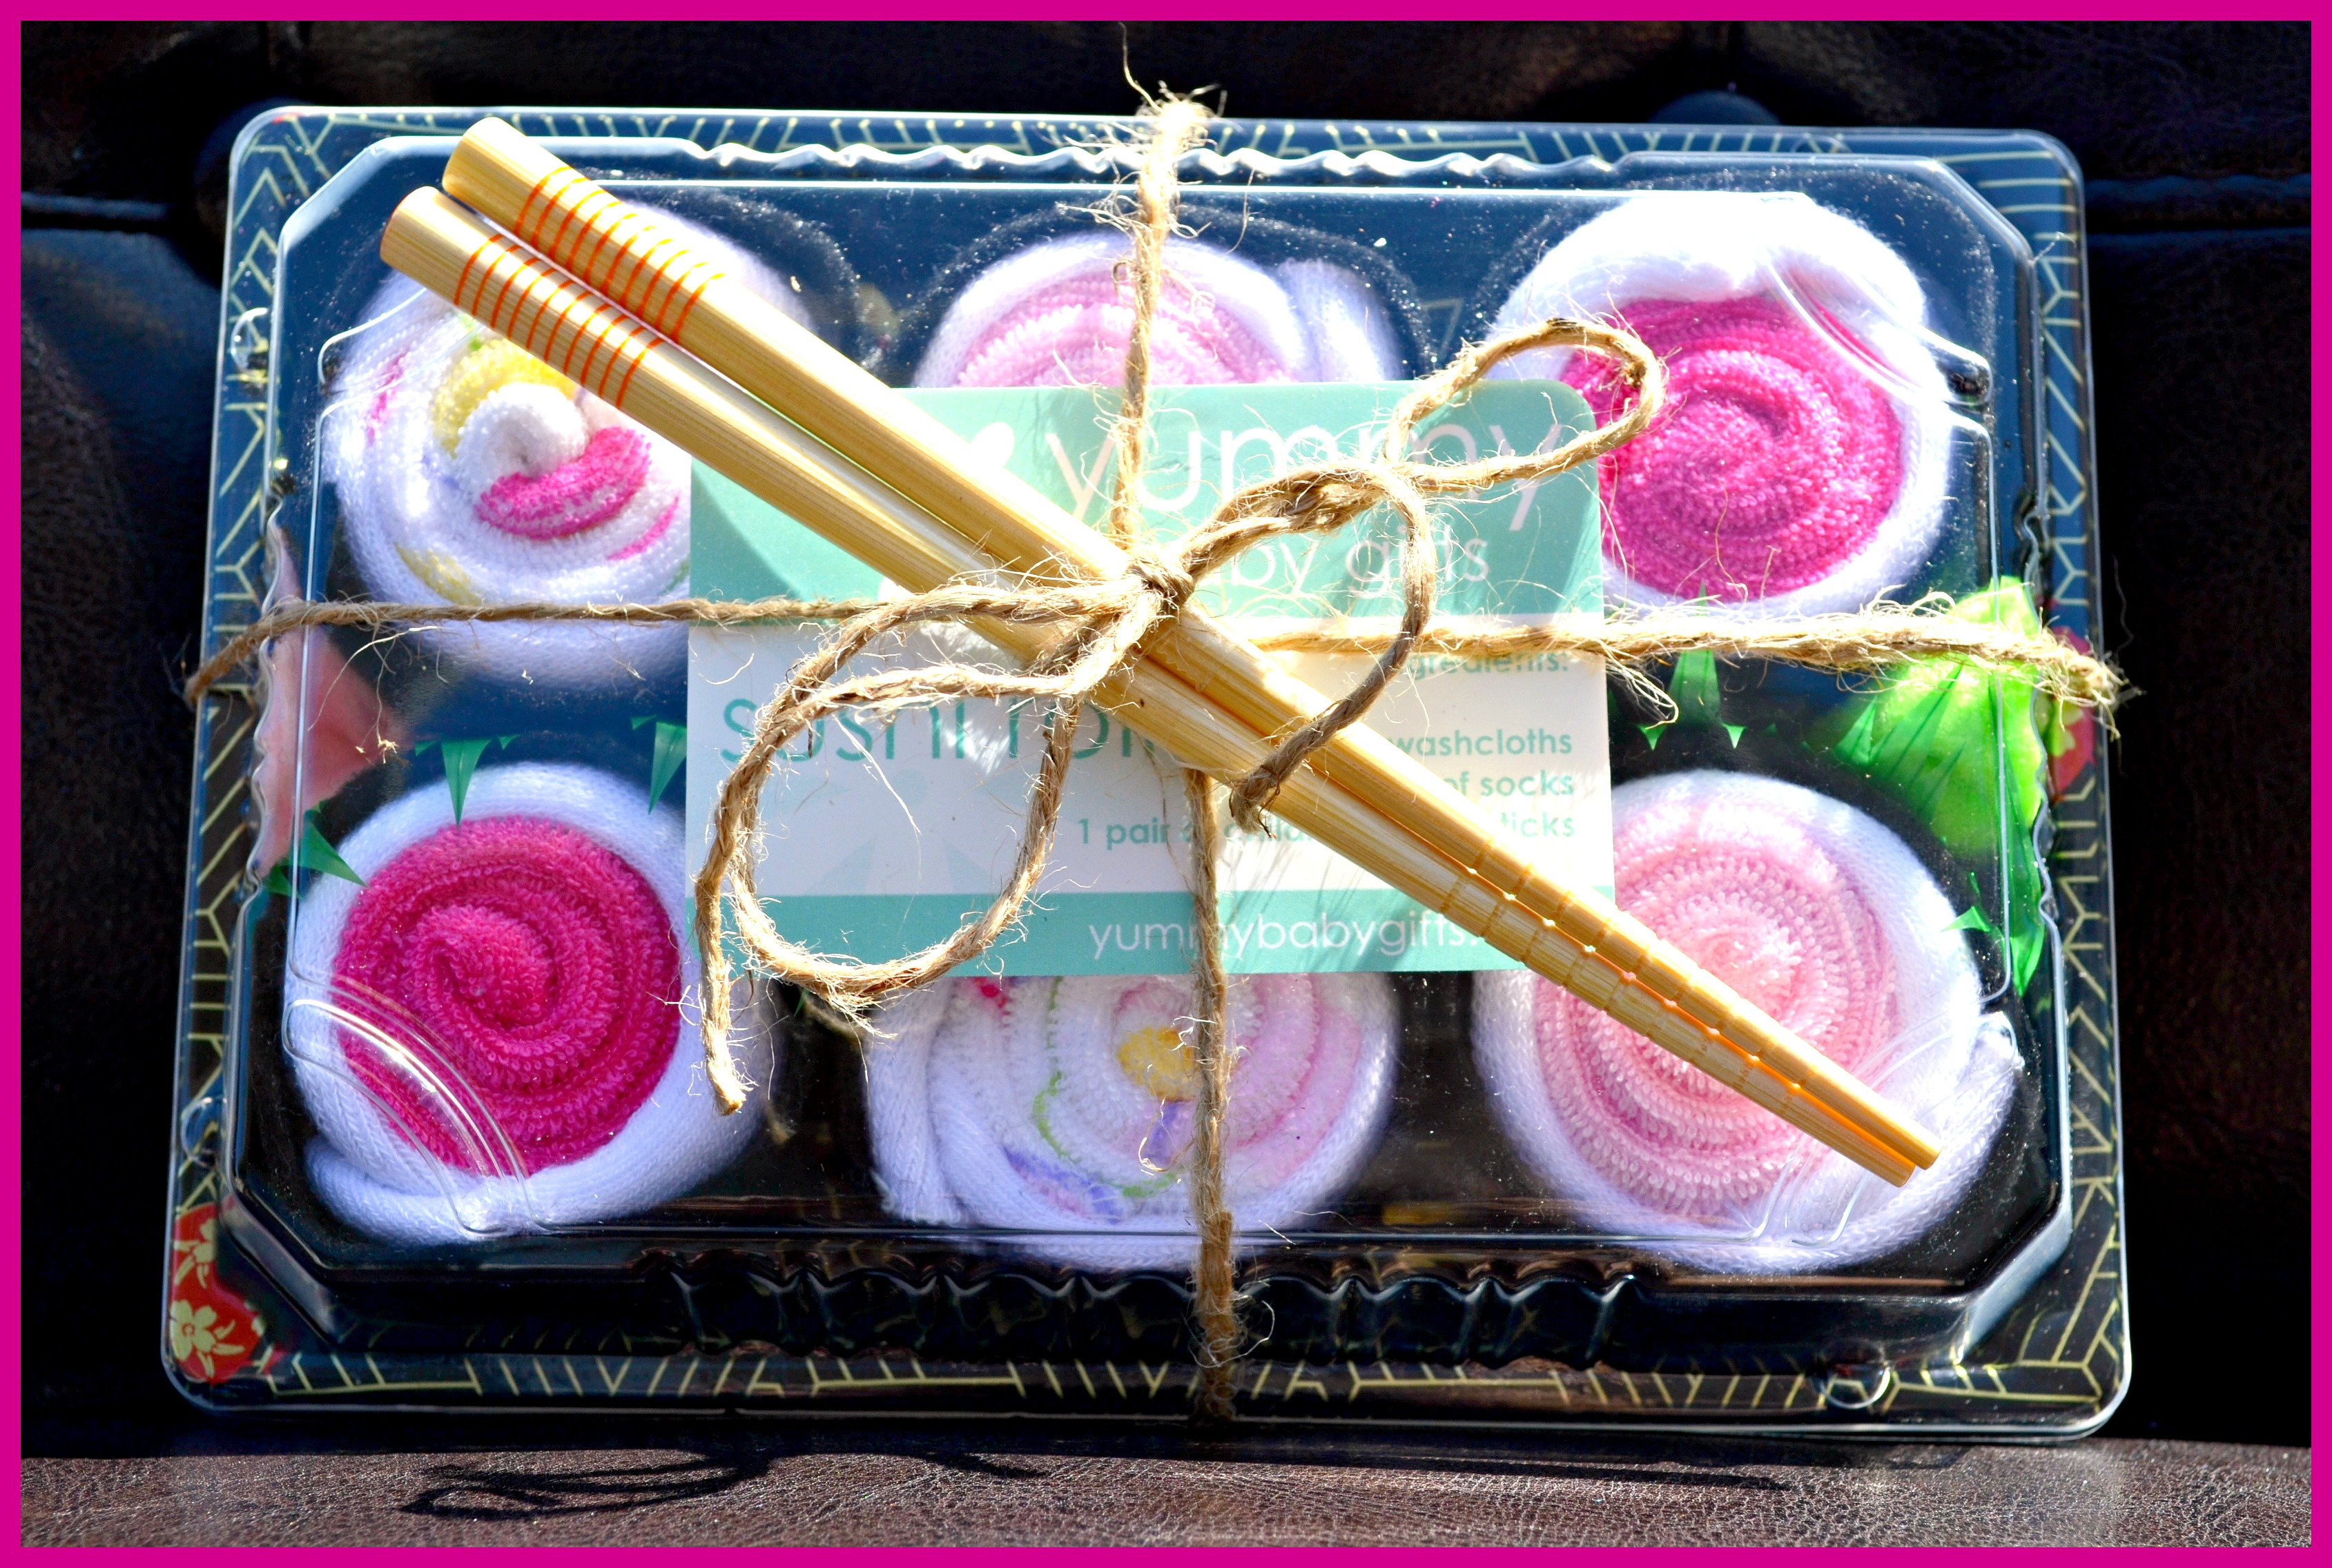 yummy baby gifts sushi rolls getting ready for baby gift guide, Baby shower